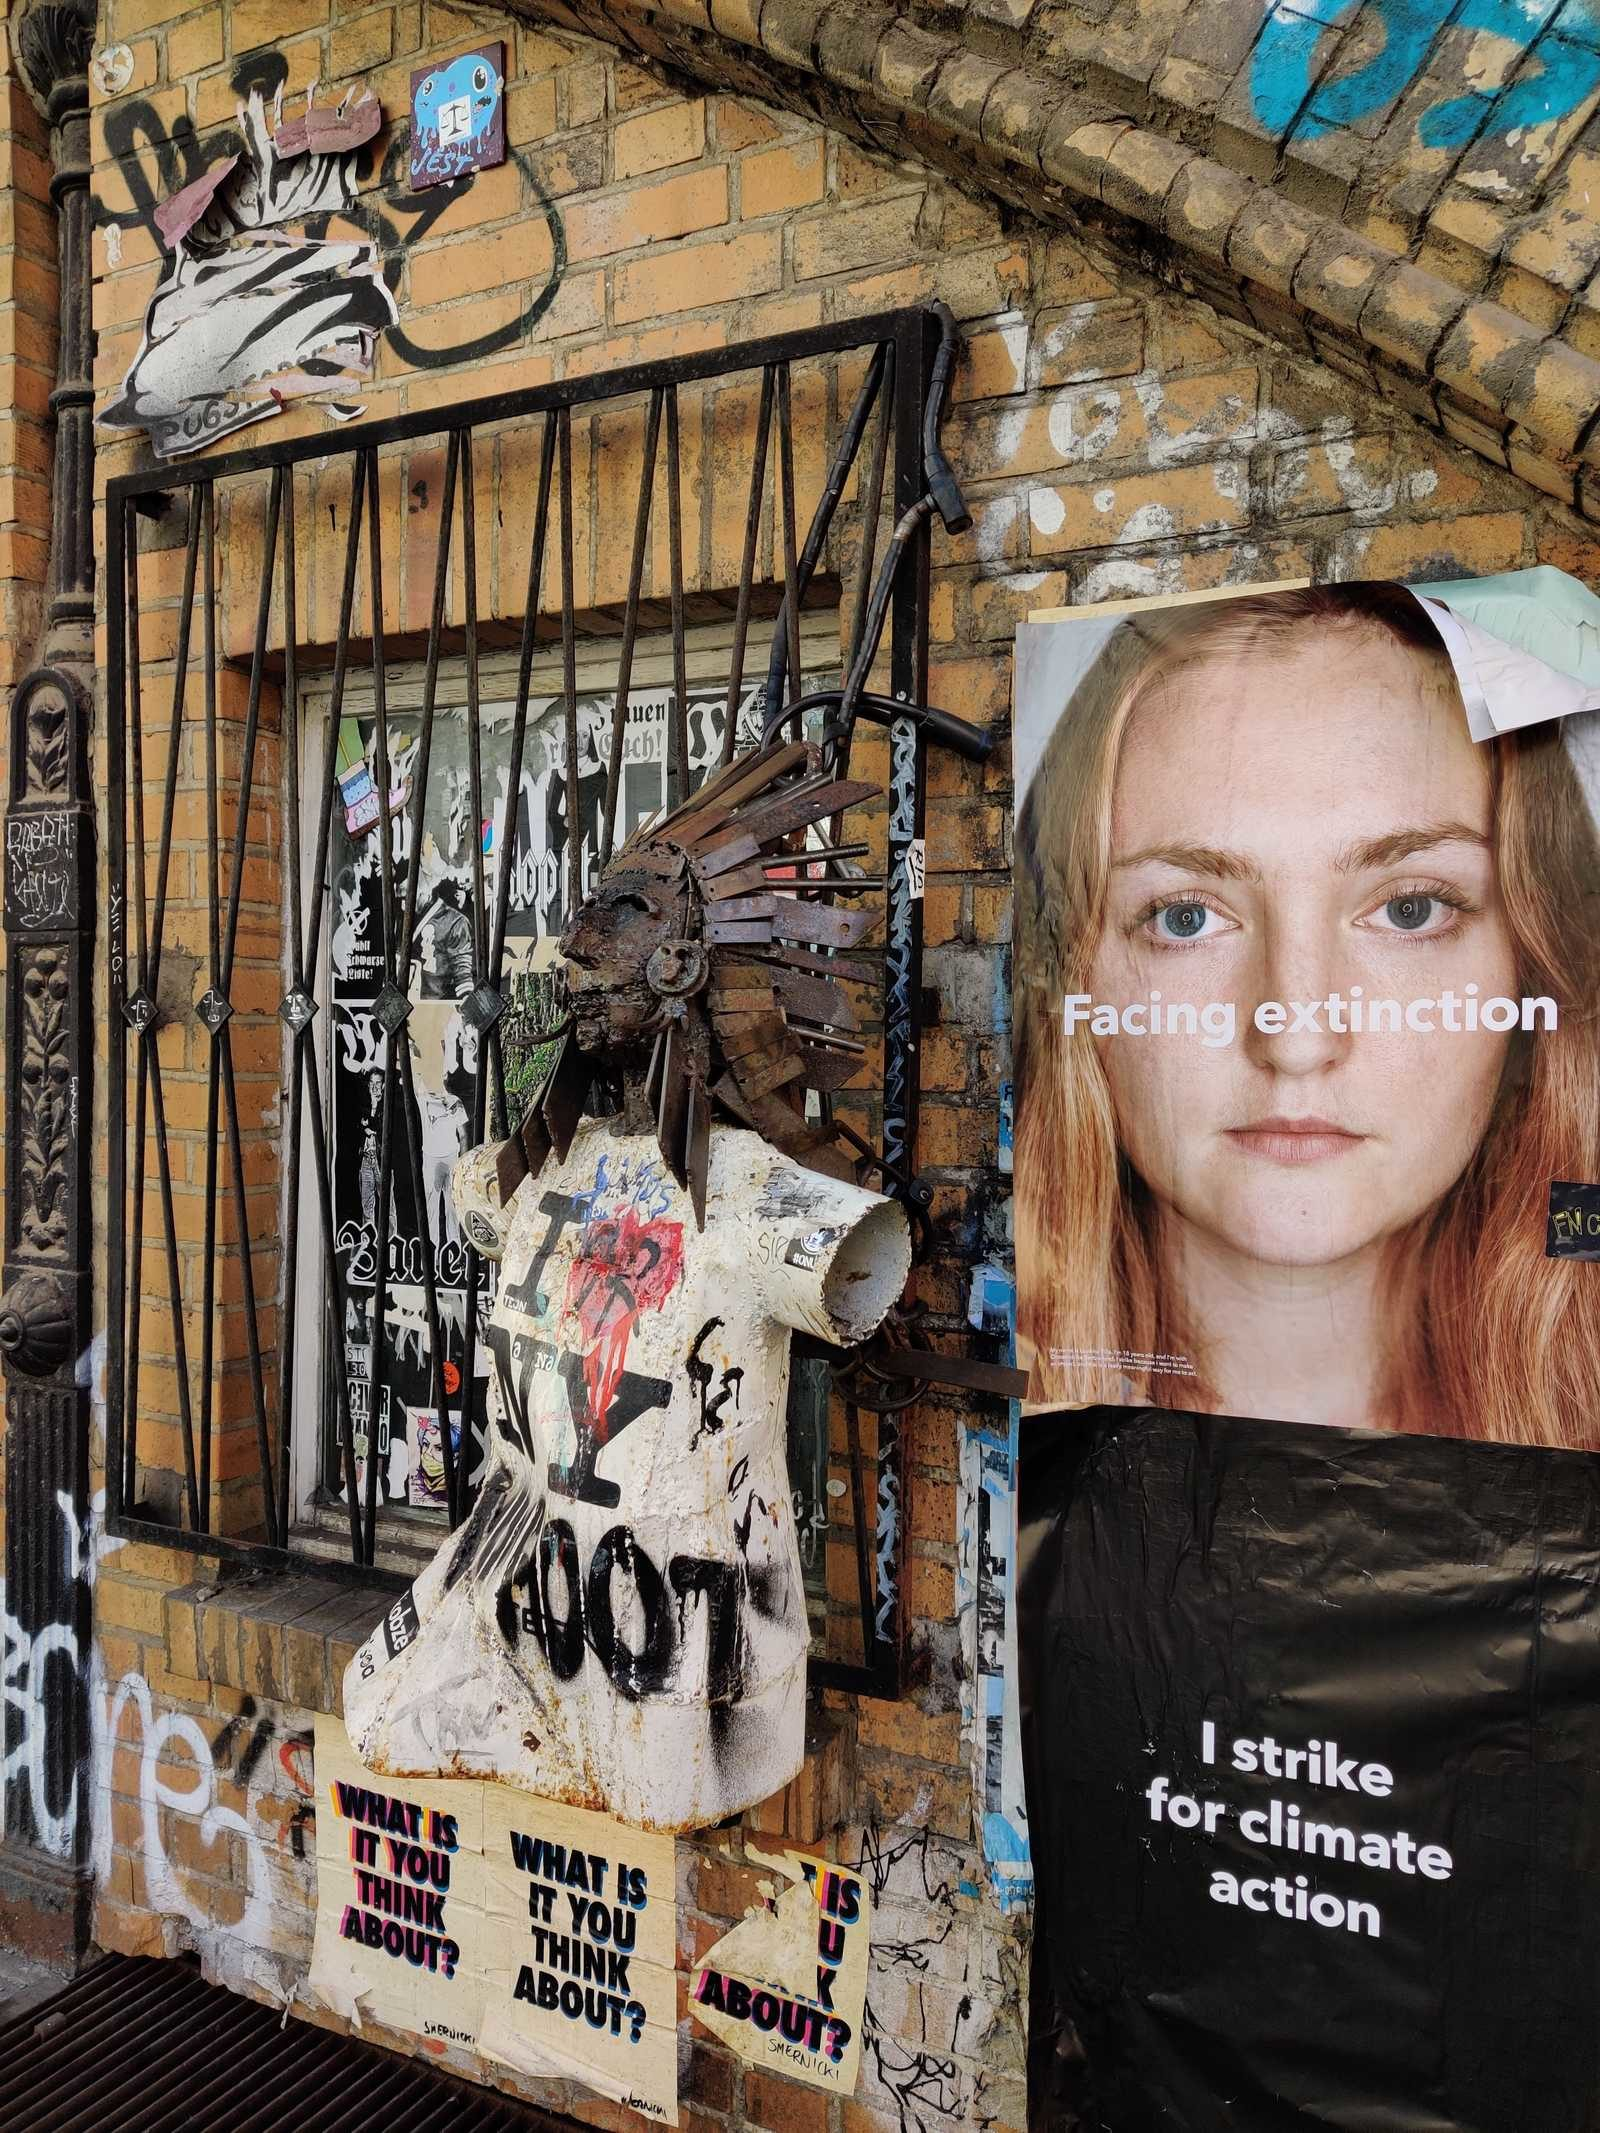 """Pasted upon a Wall in Berlin: """"Facing Extinction - I strike for climate action"""". Beside of the poster, a chaotic artsy wall in the typical flair of Germany's capital."""